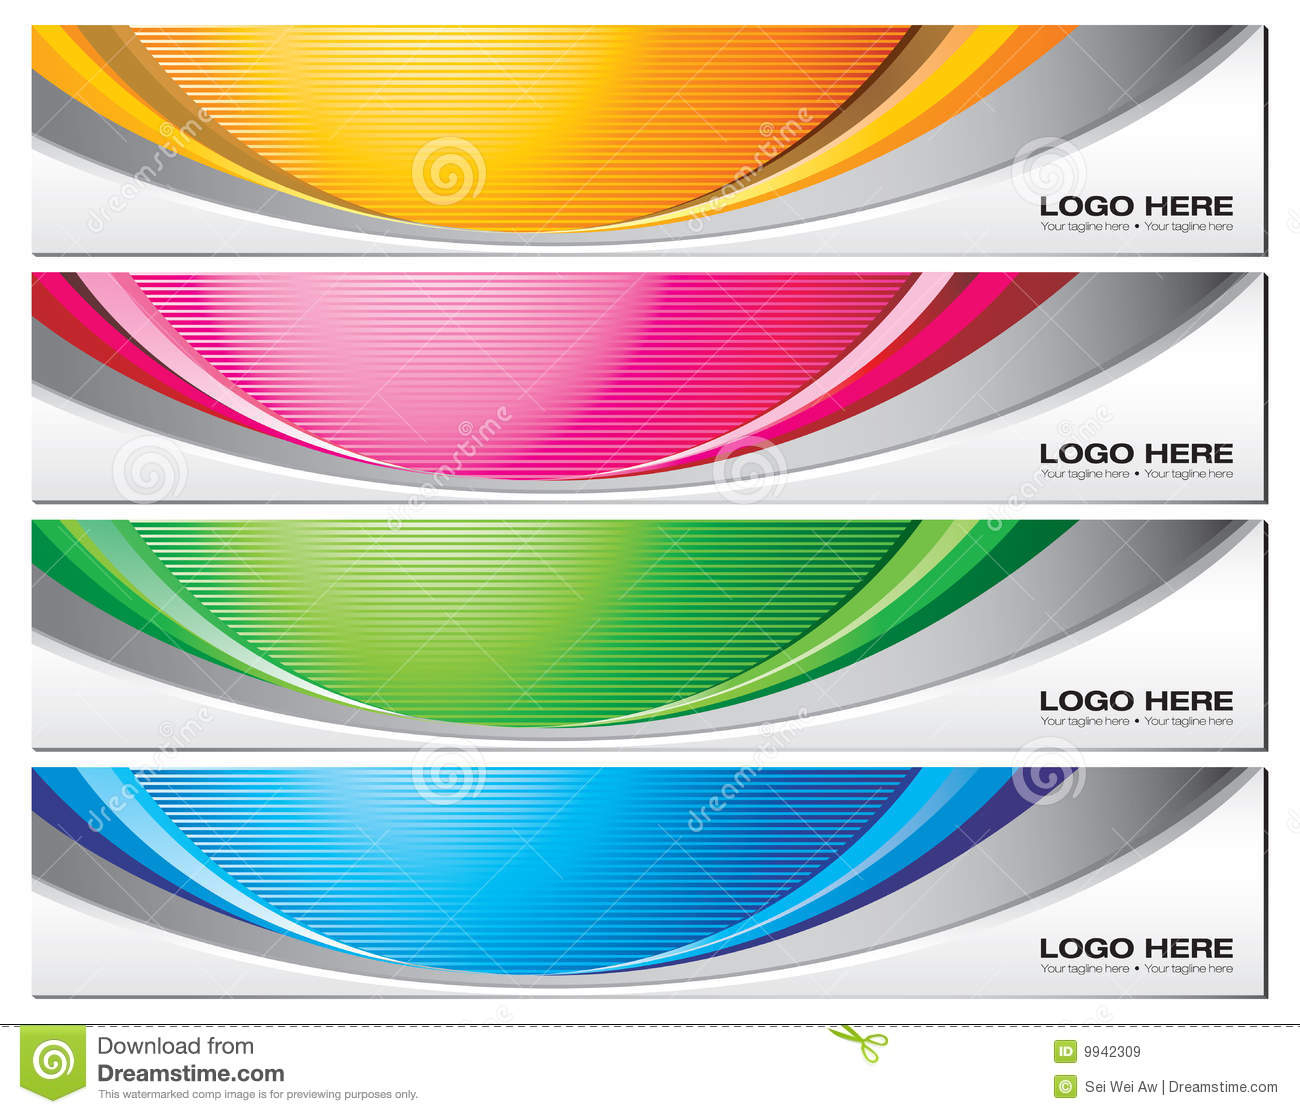 Banner Templates Stock Vector. Illustration Of Vector - 9942309 Throughout Free Online Banner Templates